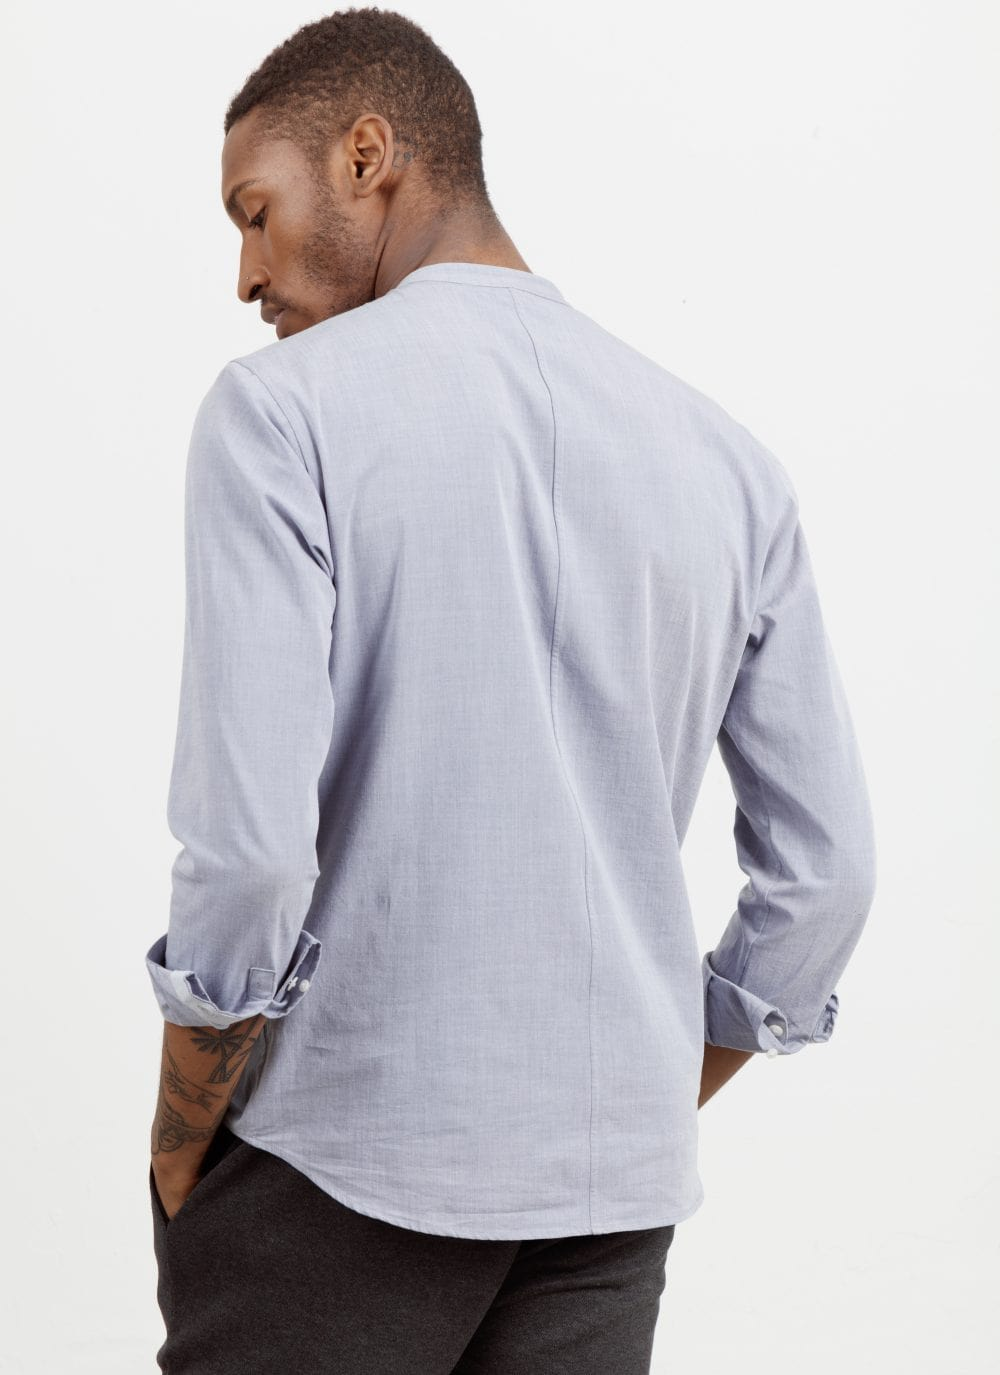 The All Day Shirt || Navy-Chambray | Collarless